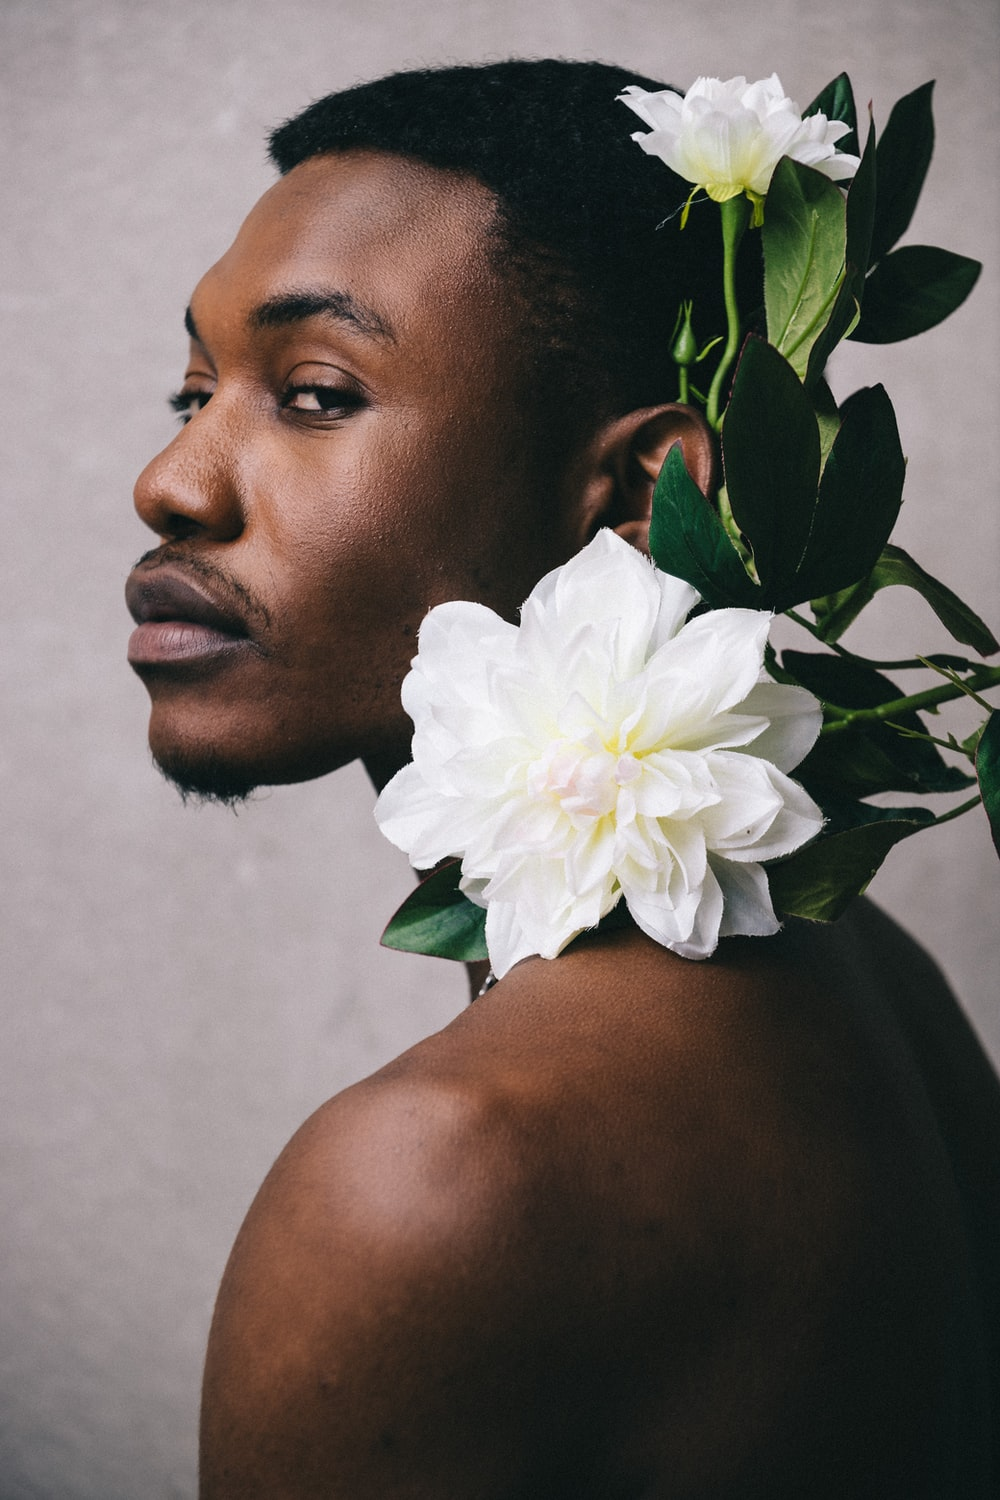 man with white flower on his ear